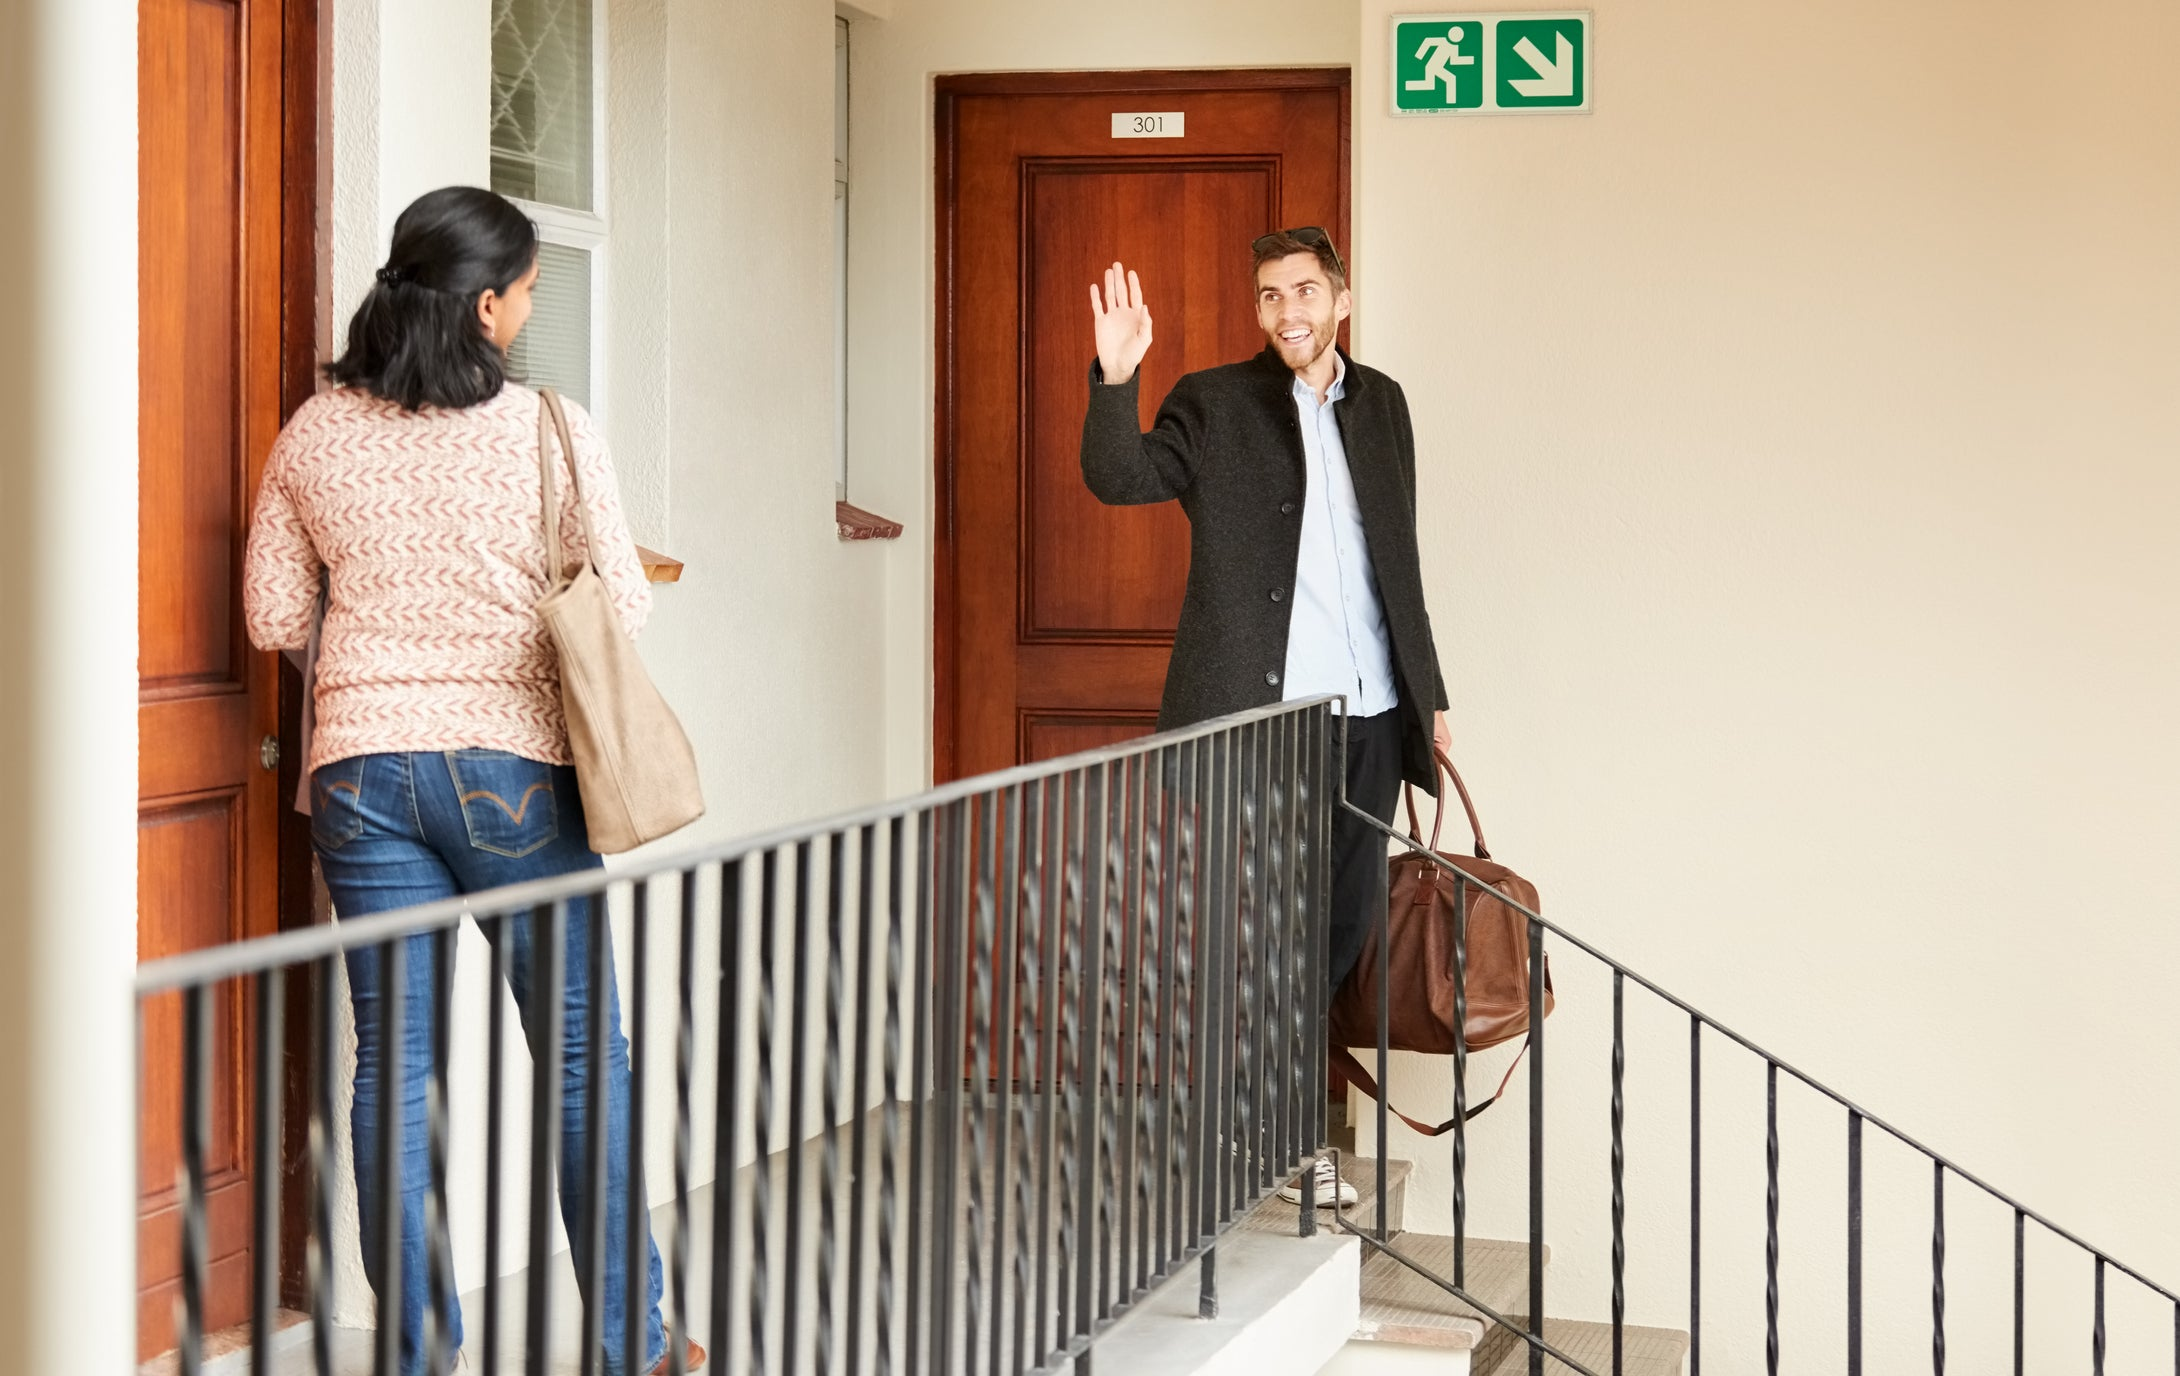 Shot of a man going out and waving to the female neighbour